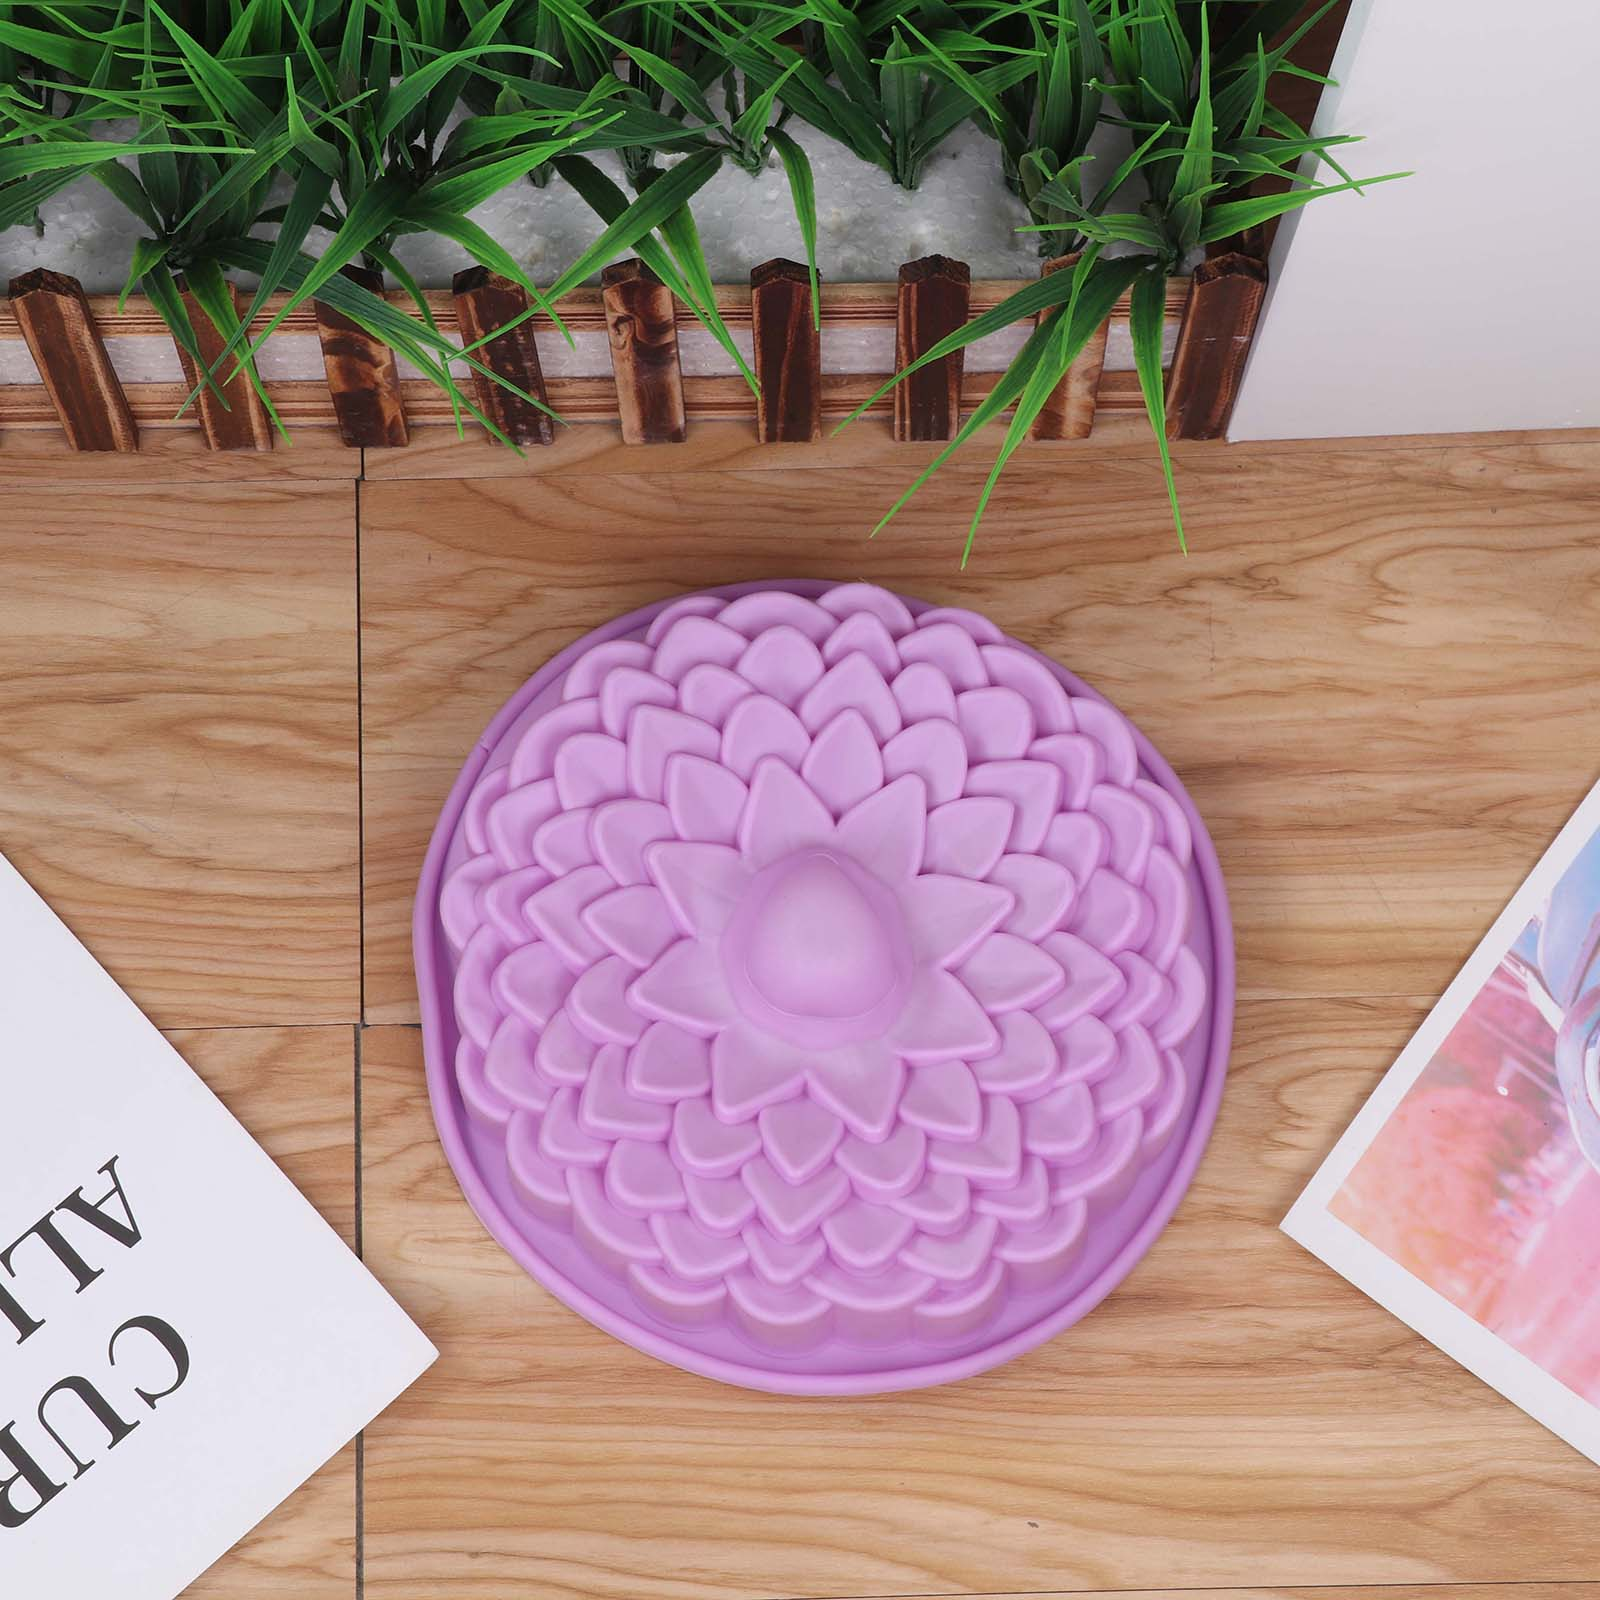 Cake Baking Mold Silicone Pans Flower Green Blue Purple 3D Bread Pastry Bakeware Mold For Homemade DIY Birthday Wedding Party